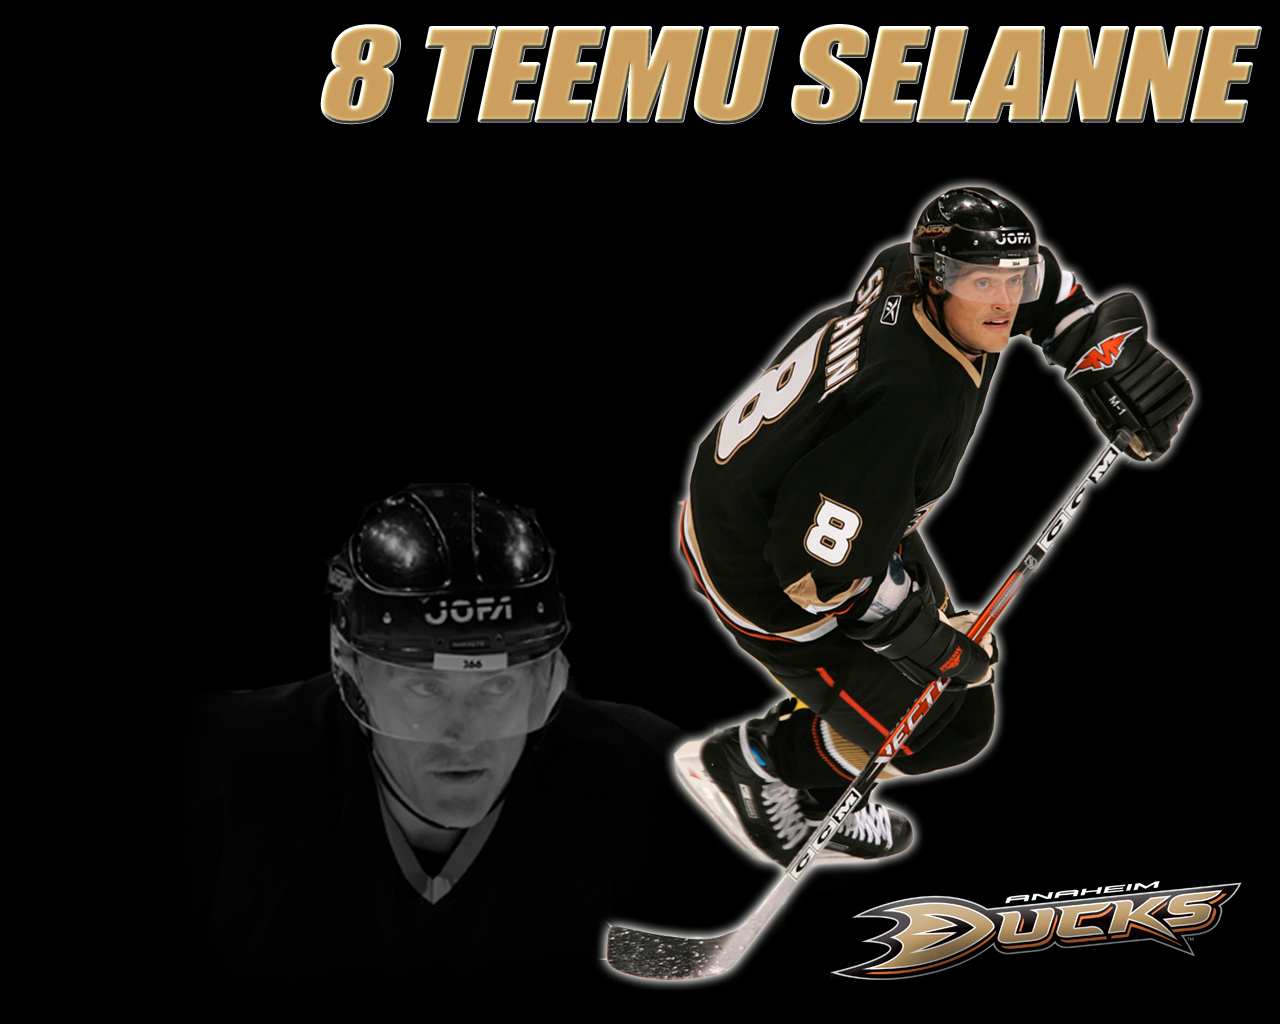 images anaheim ducks wallpaper nhl wallpapers hockey sports html 1280x1024